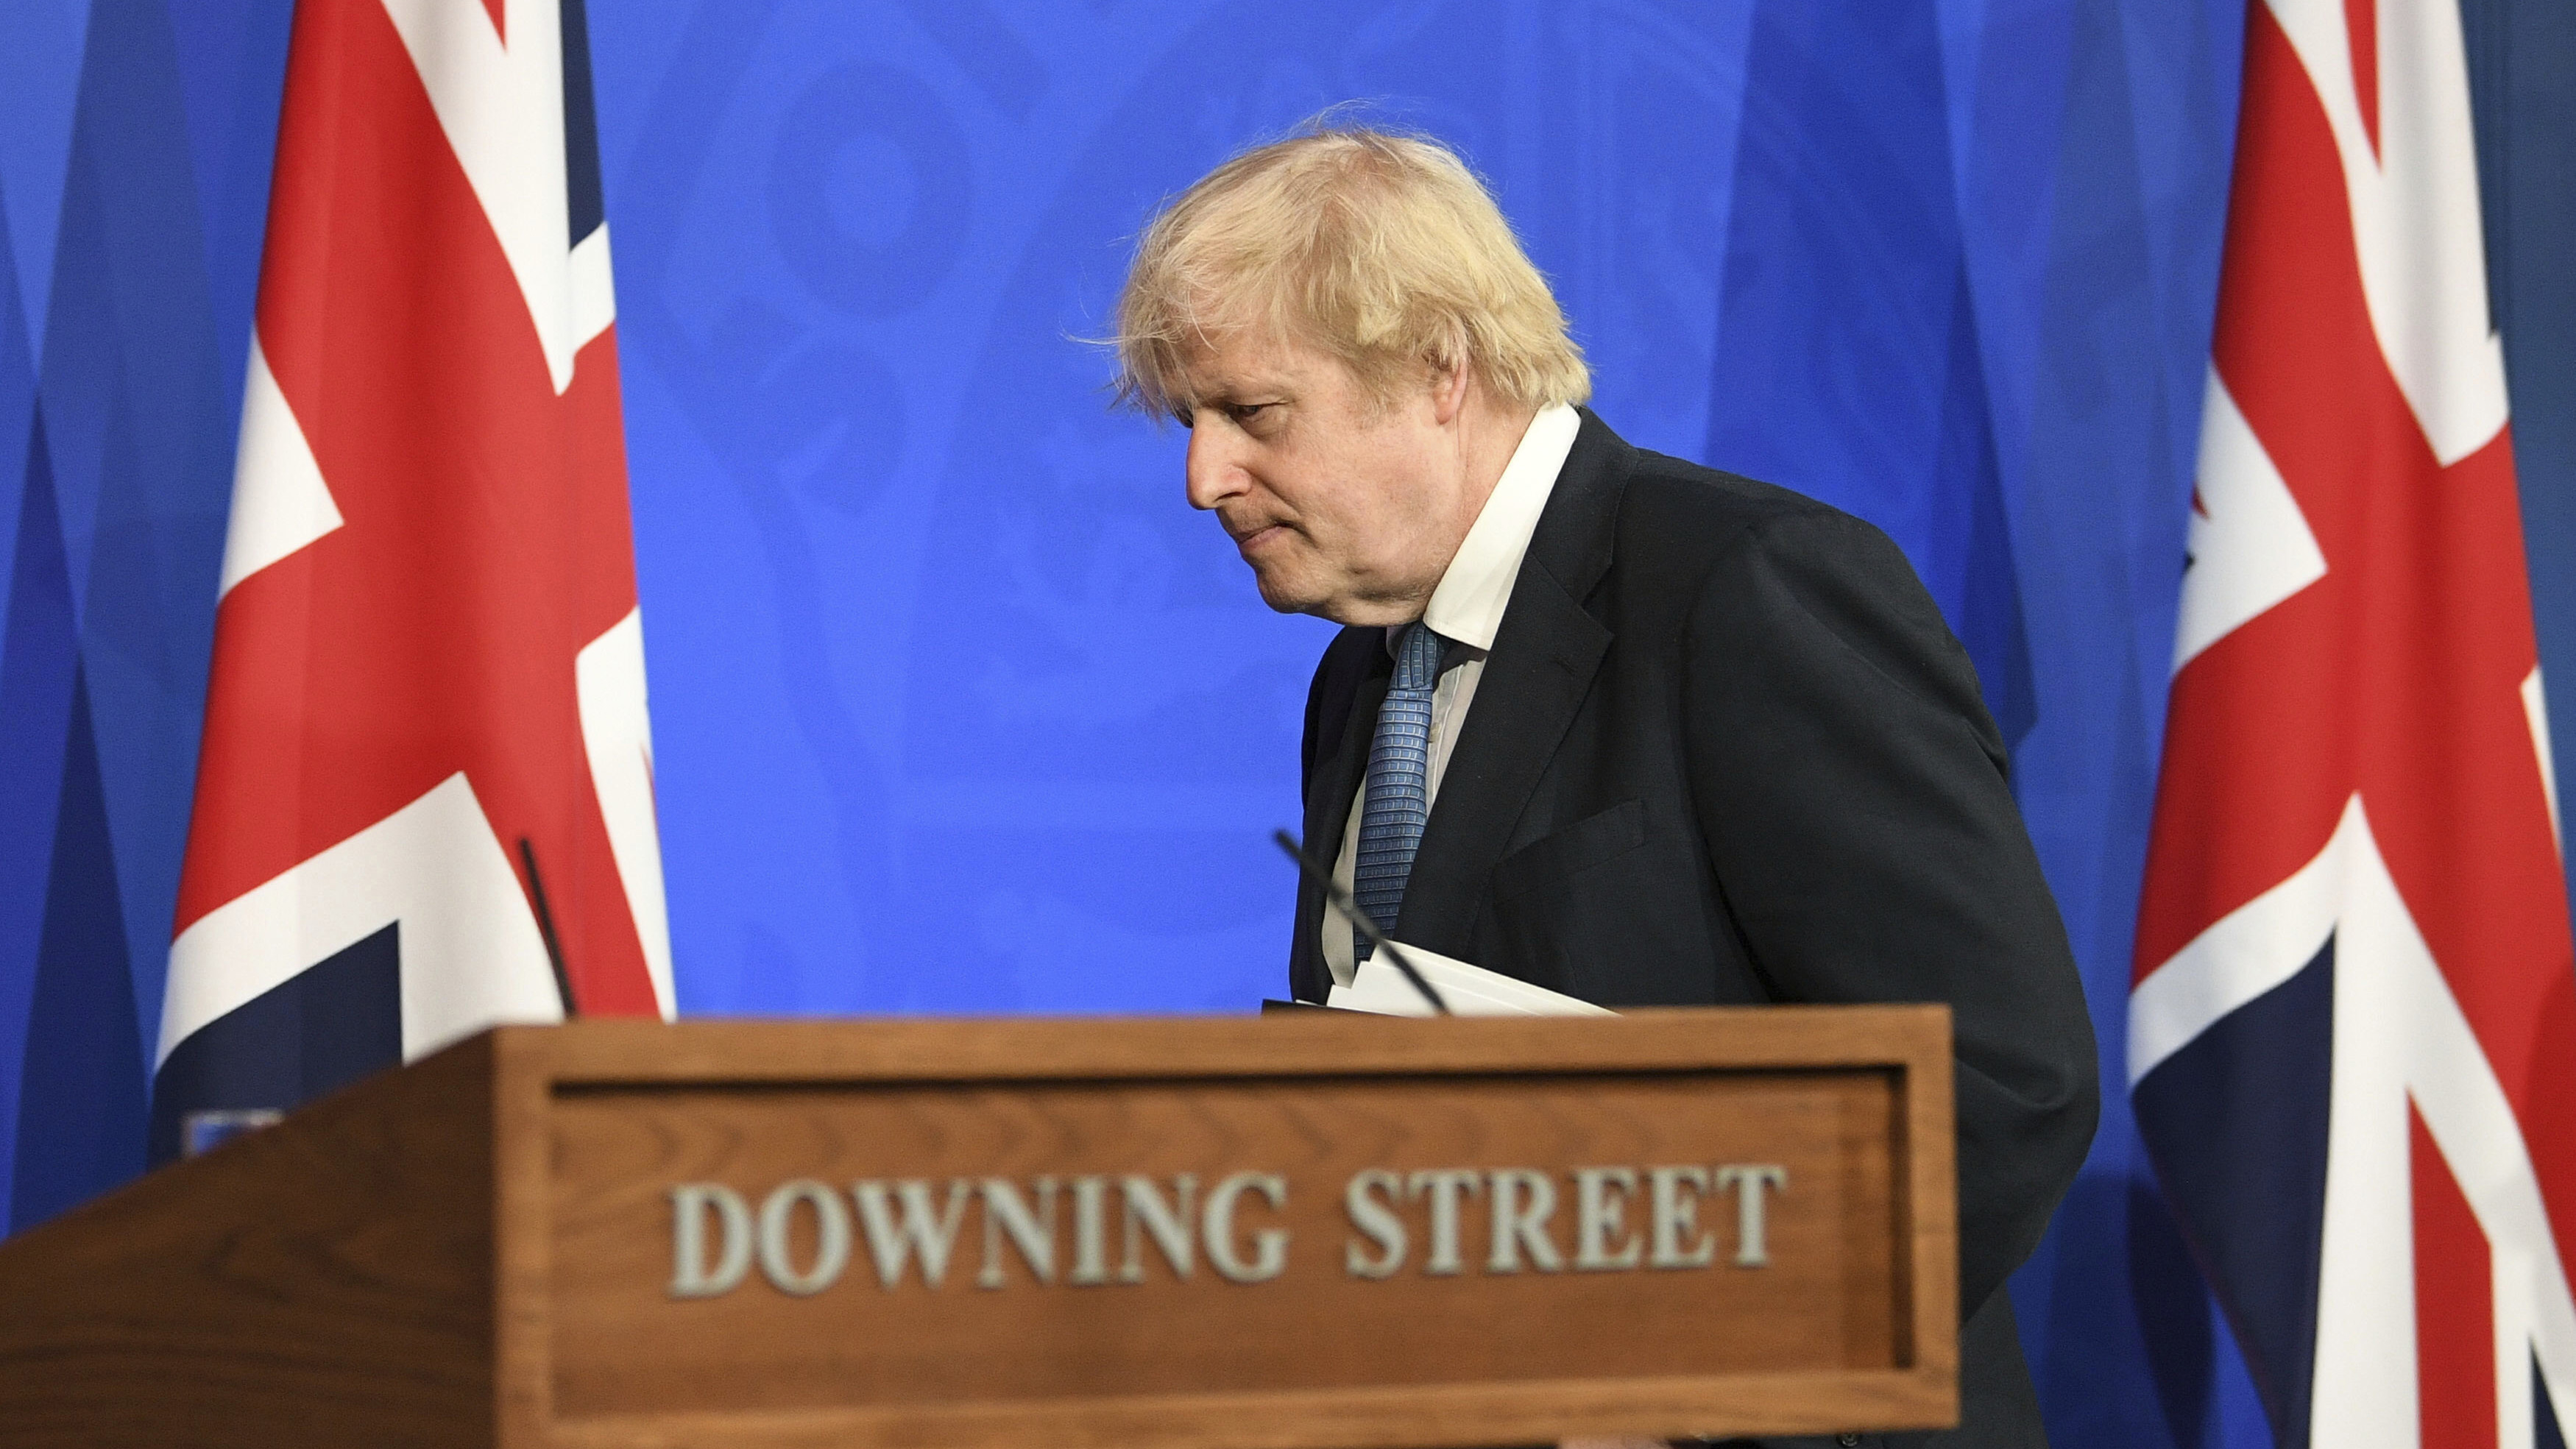 Britain's Prime Minister Boris Johnson leaves, after a coronavirus briefing in Downing Street, London